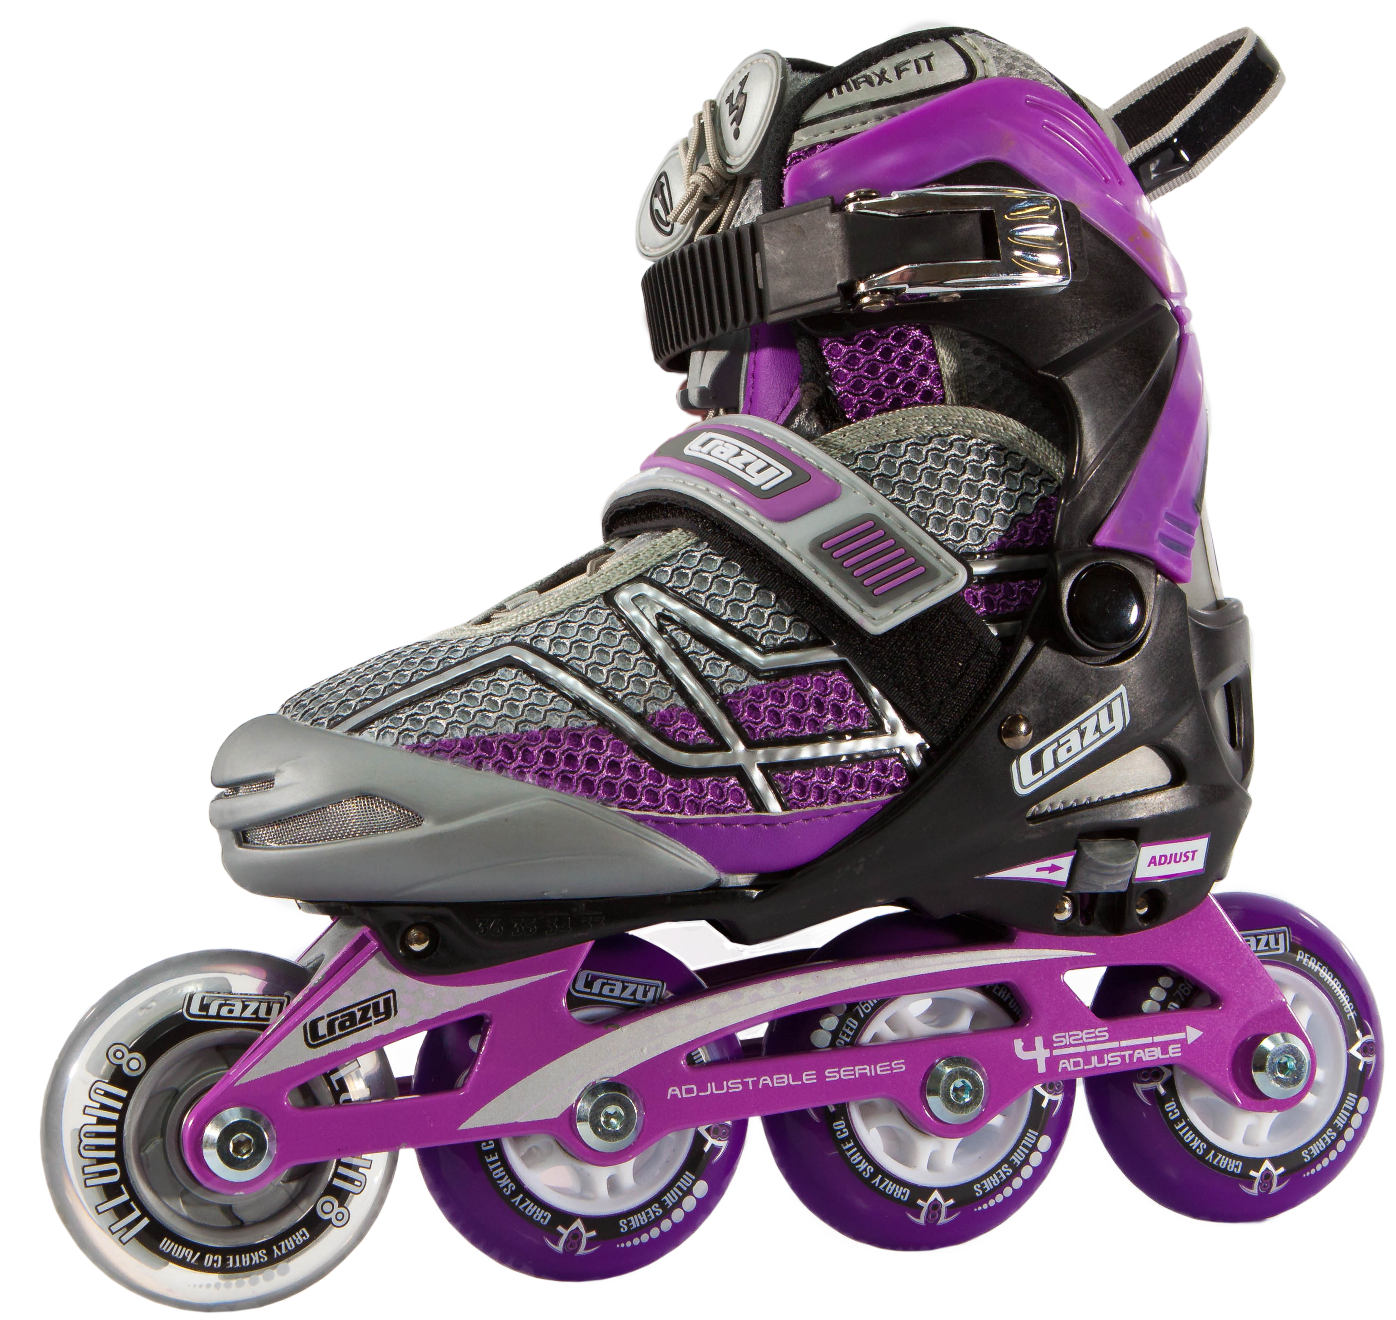 Crazy Skates 528 Adjustable Purple and Black Recreational Inline Skates - Roller Skates PNG HD